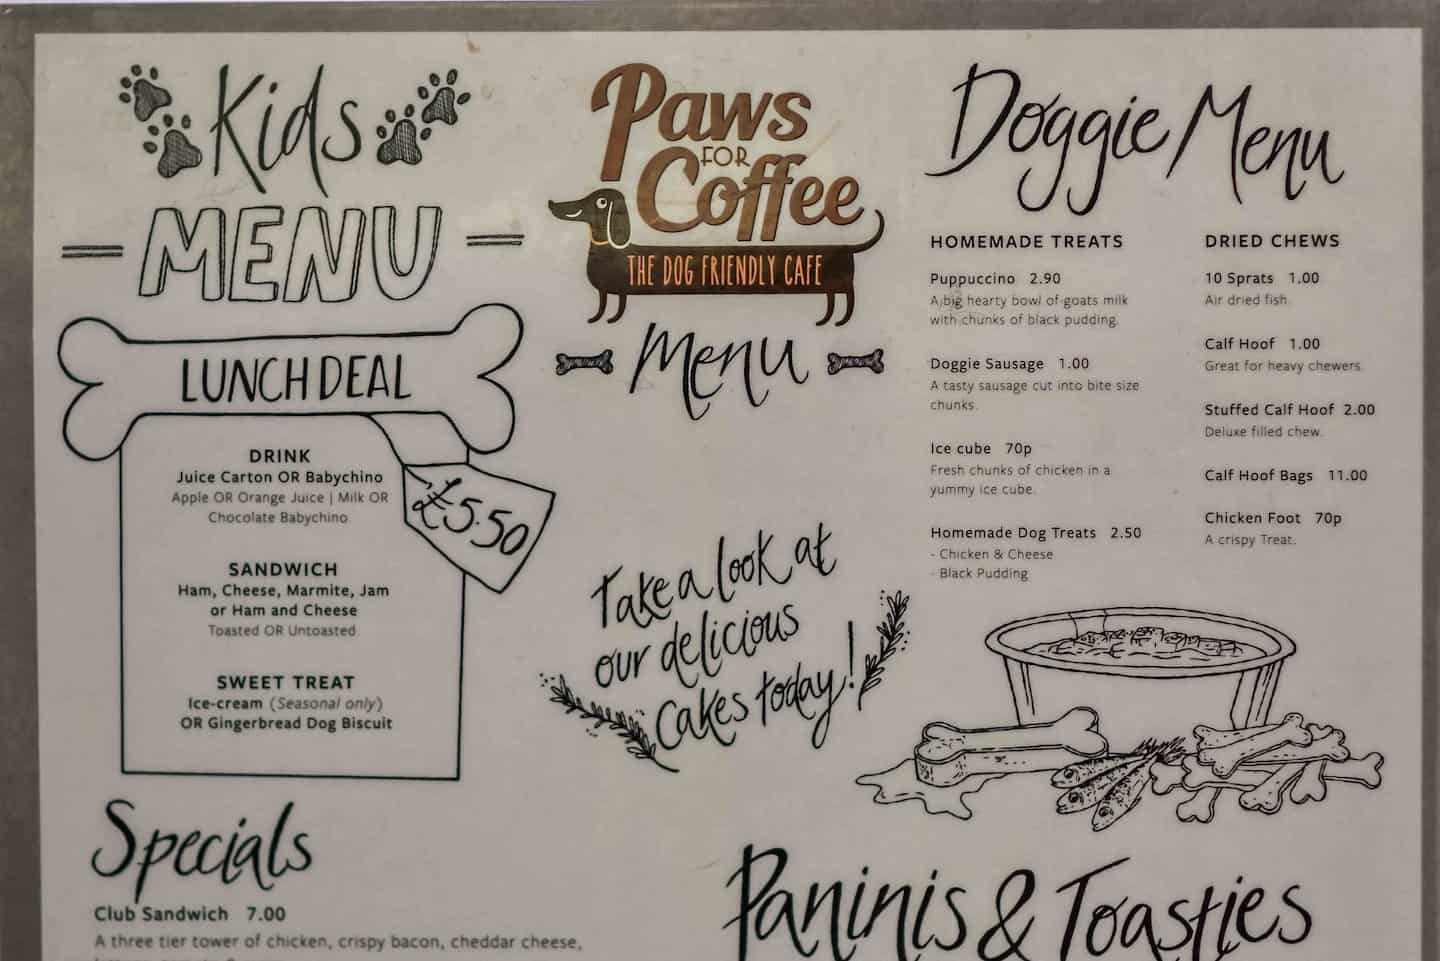 Things to Do For London Dogs 14-17 June - Paws For Coffee Menu